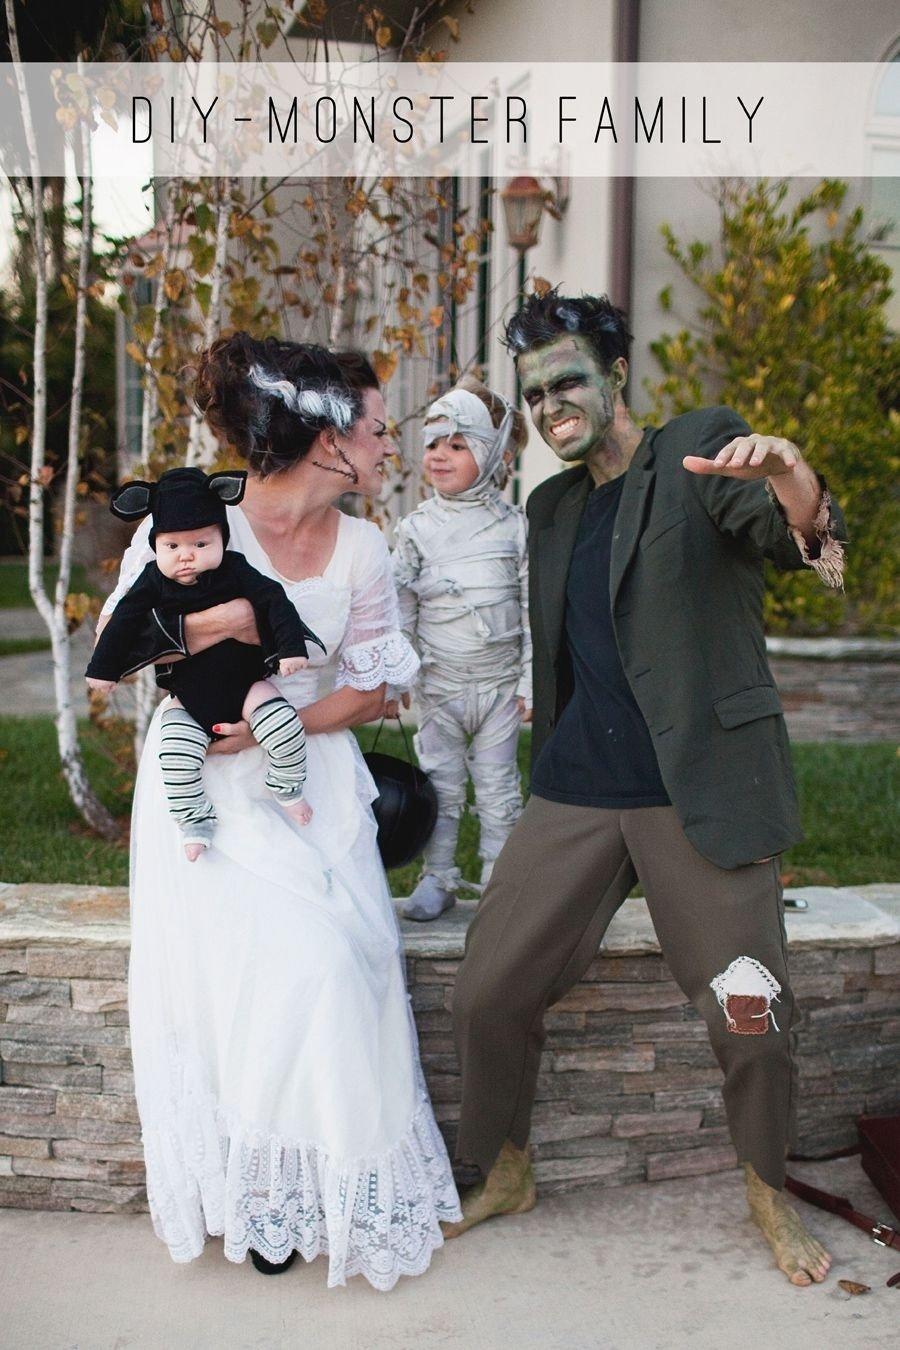 10 Perfect Bride Of Frankenstein Costume Ideas monster family costume diy monsters costumes and chocolate 2021